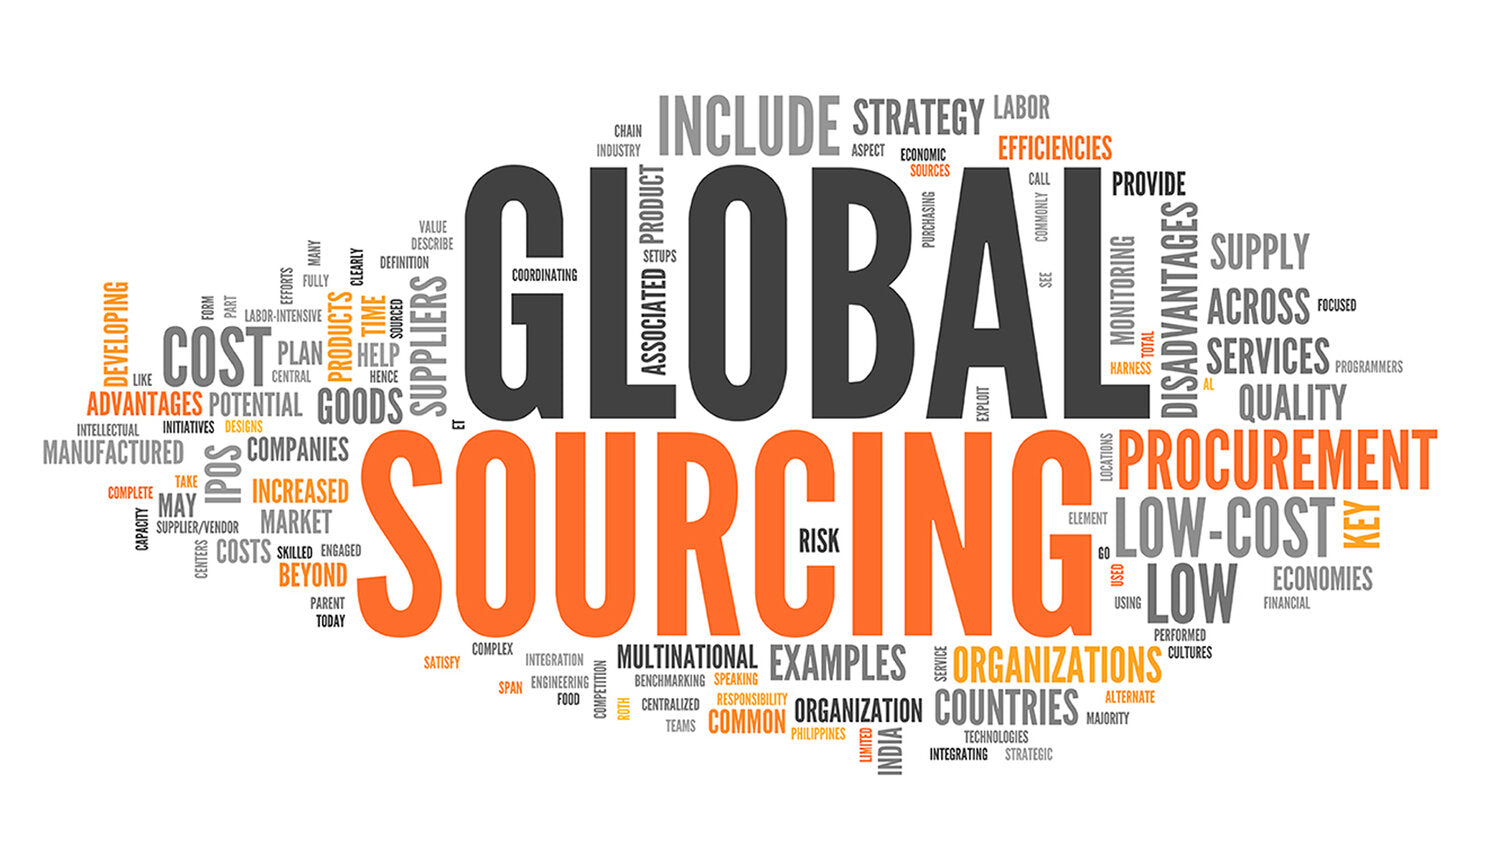 Global Sourcing and Procurement Image